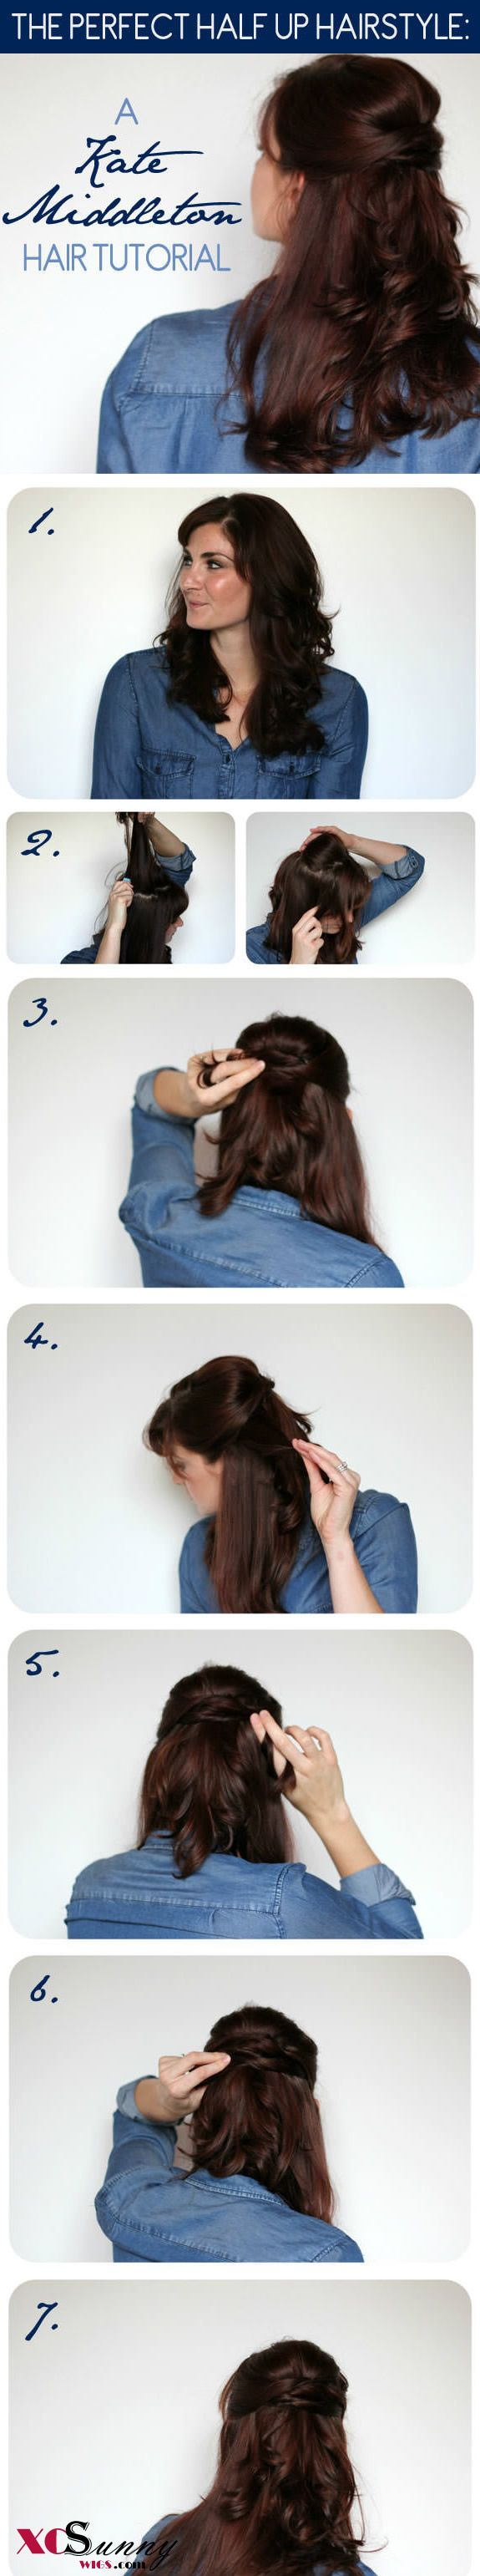 A Kate Middleton Hair Tutorial: Her Famous Half Up Hairstyle   XCSUNNYHAIR